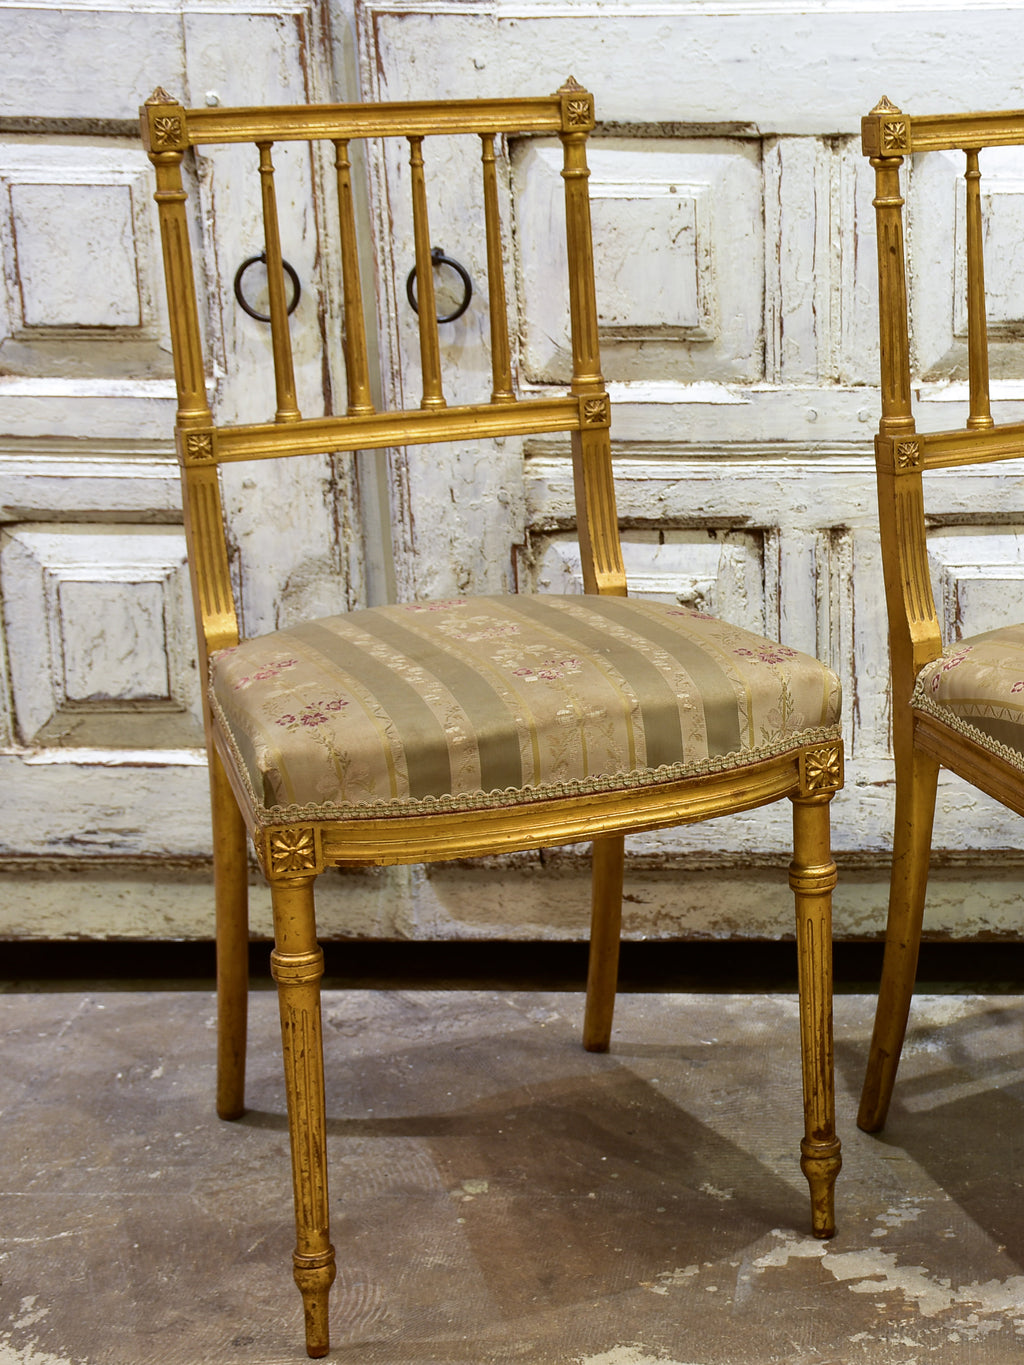 Pair of Louis XVI style gilded chairs